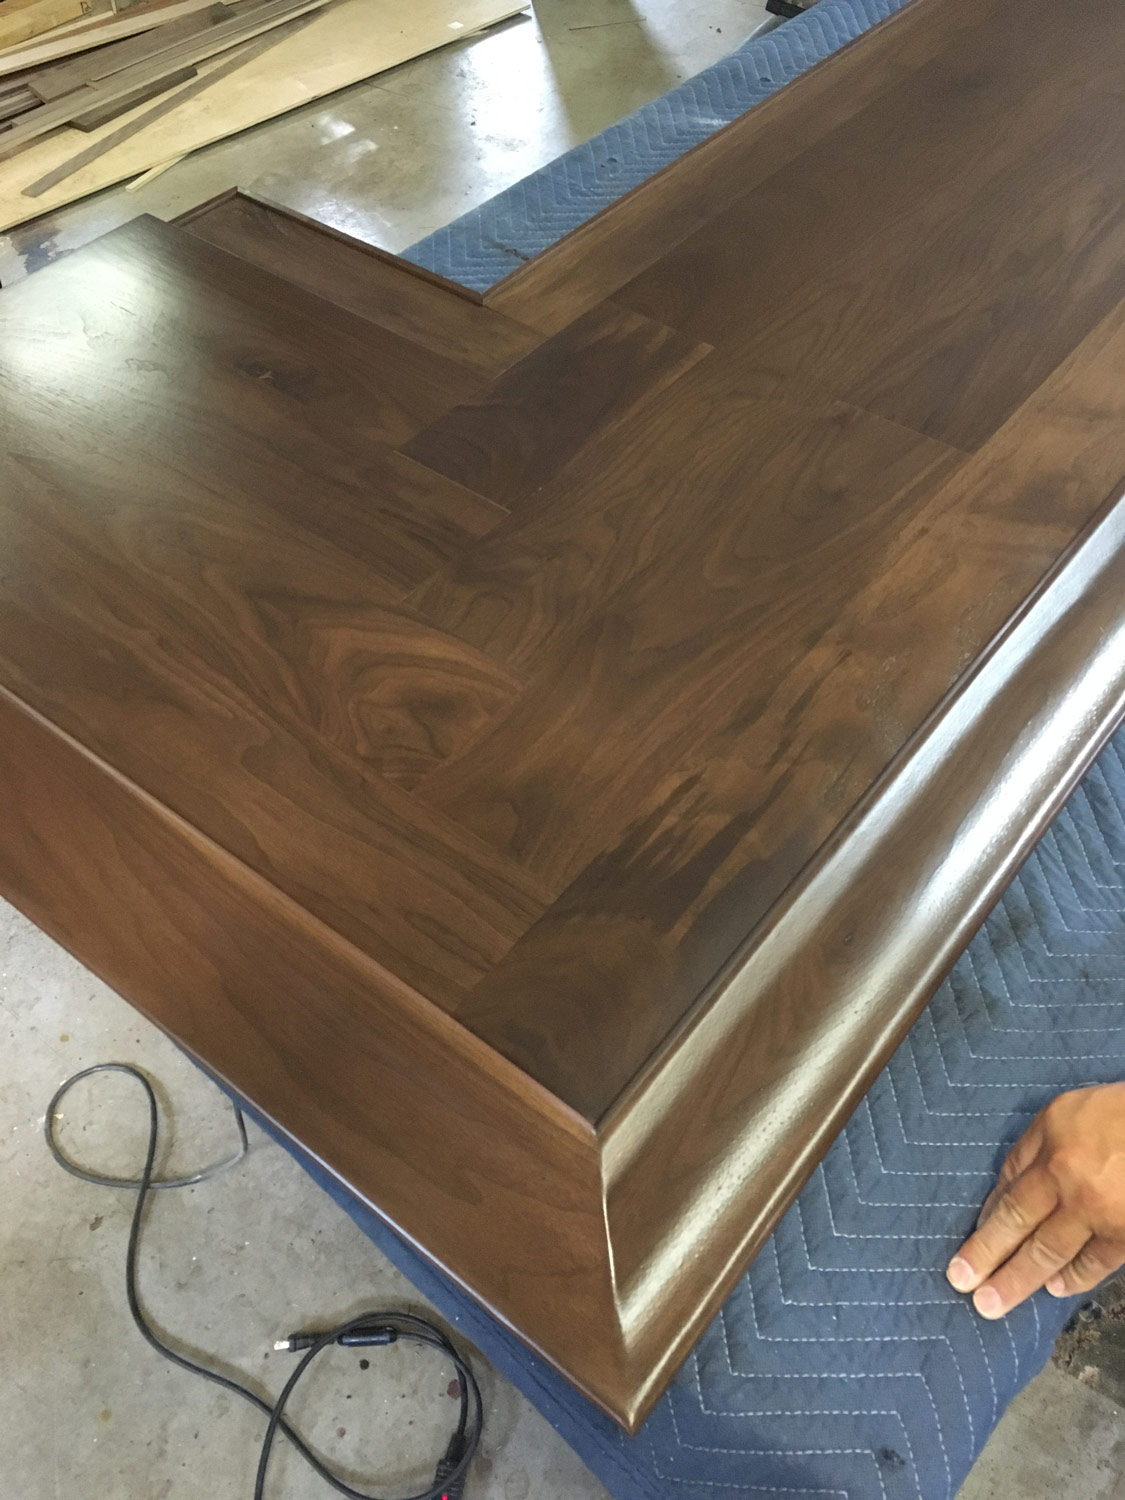 The wood grain and herringbone pattern in this walnut bar-top will become richer in color and depth as the wood ages.